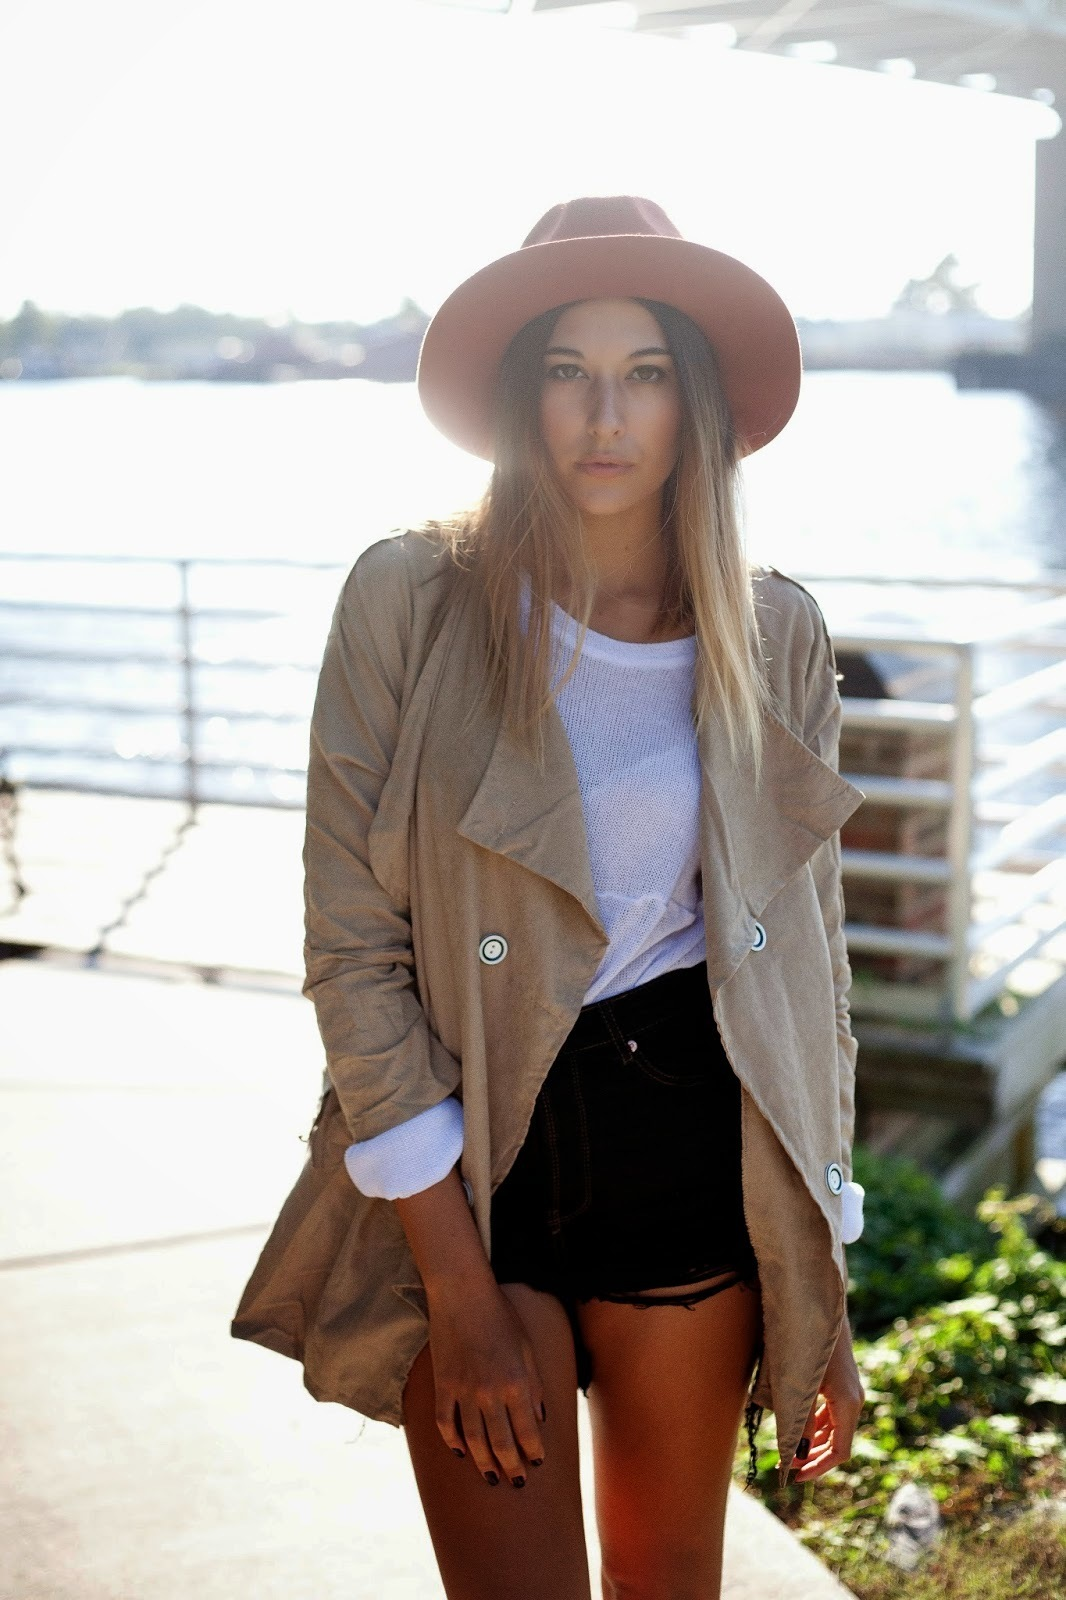 Women's Tan Trenchcoat, White Oversized Sweater, Black Denim ...